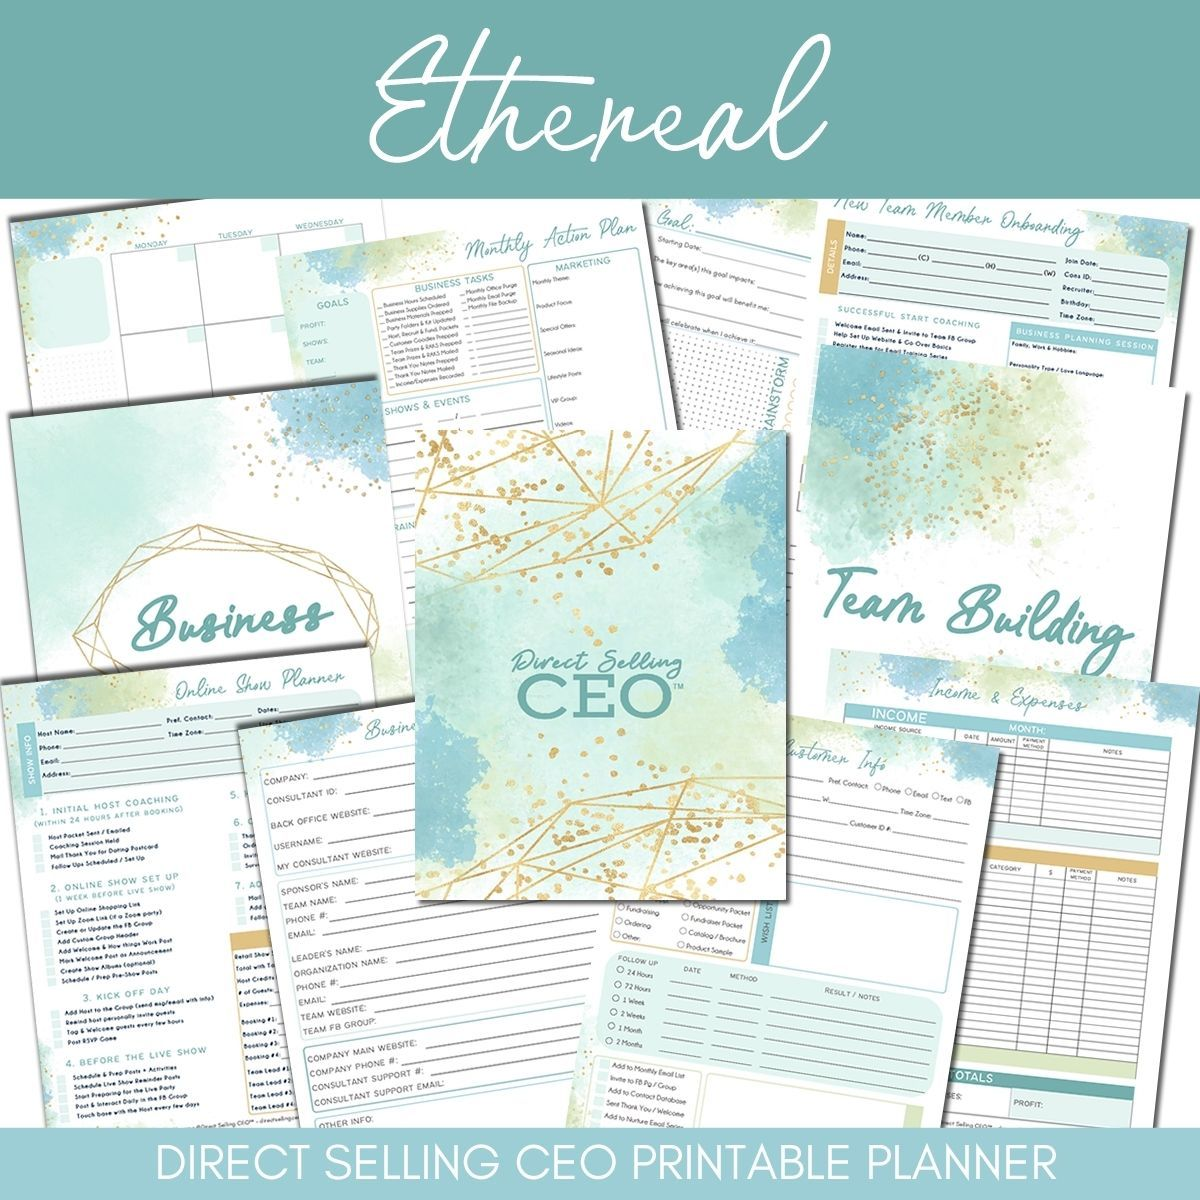 Ethereal Printable Direct Sales Planner by DSCEO